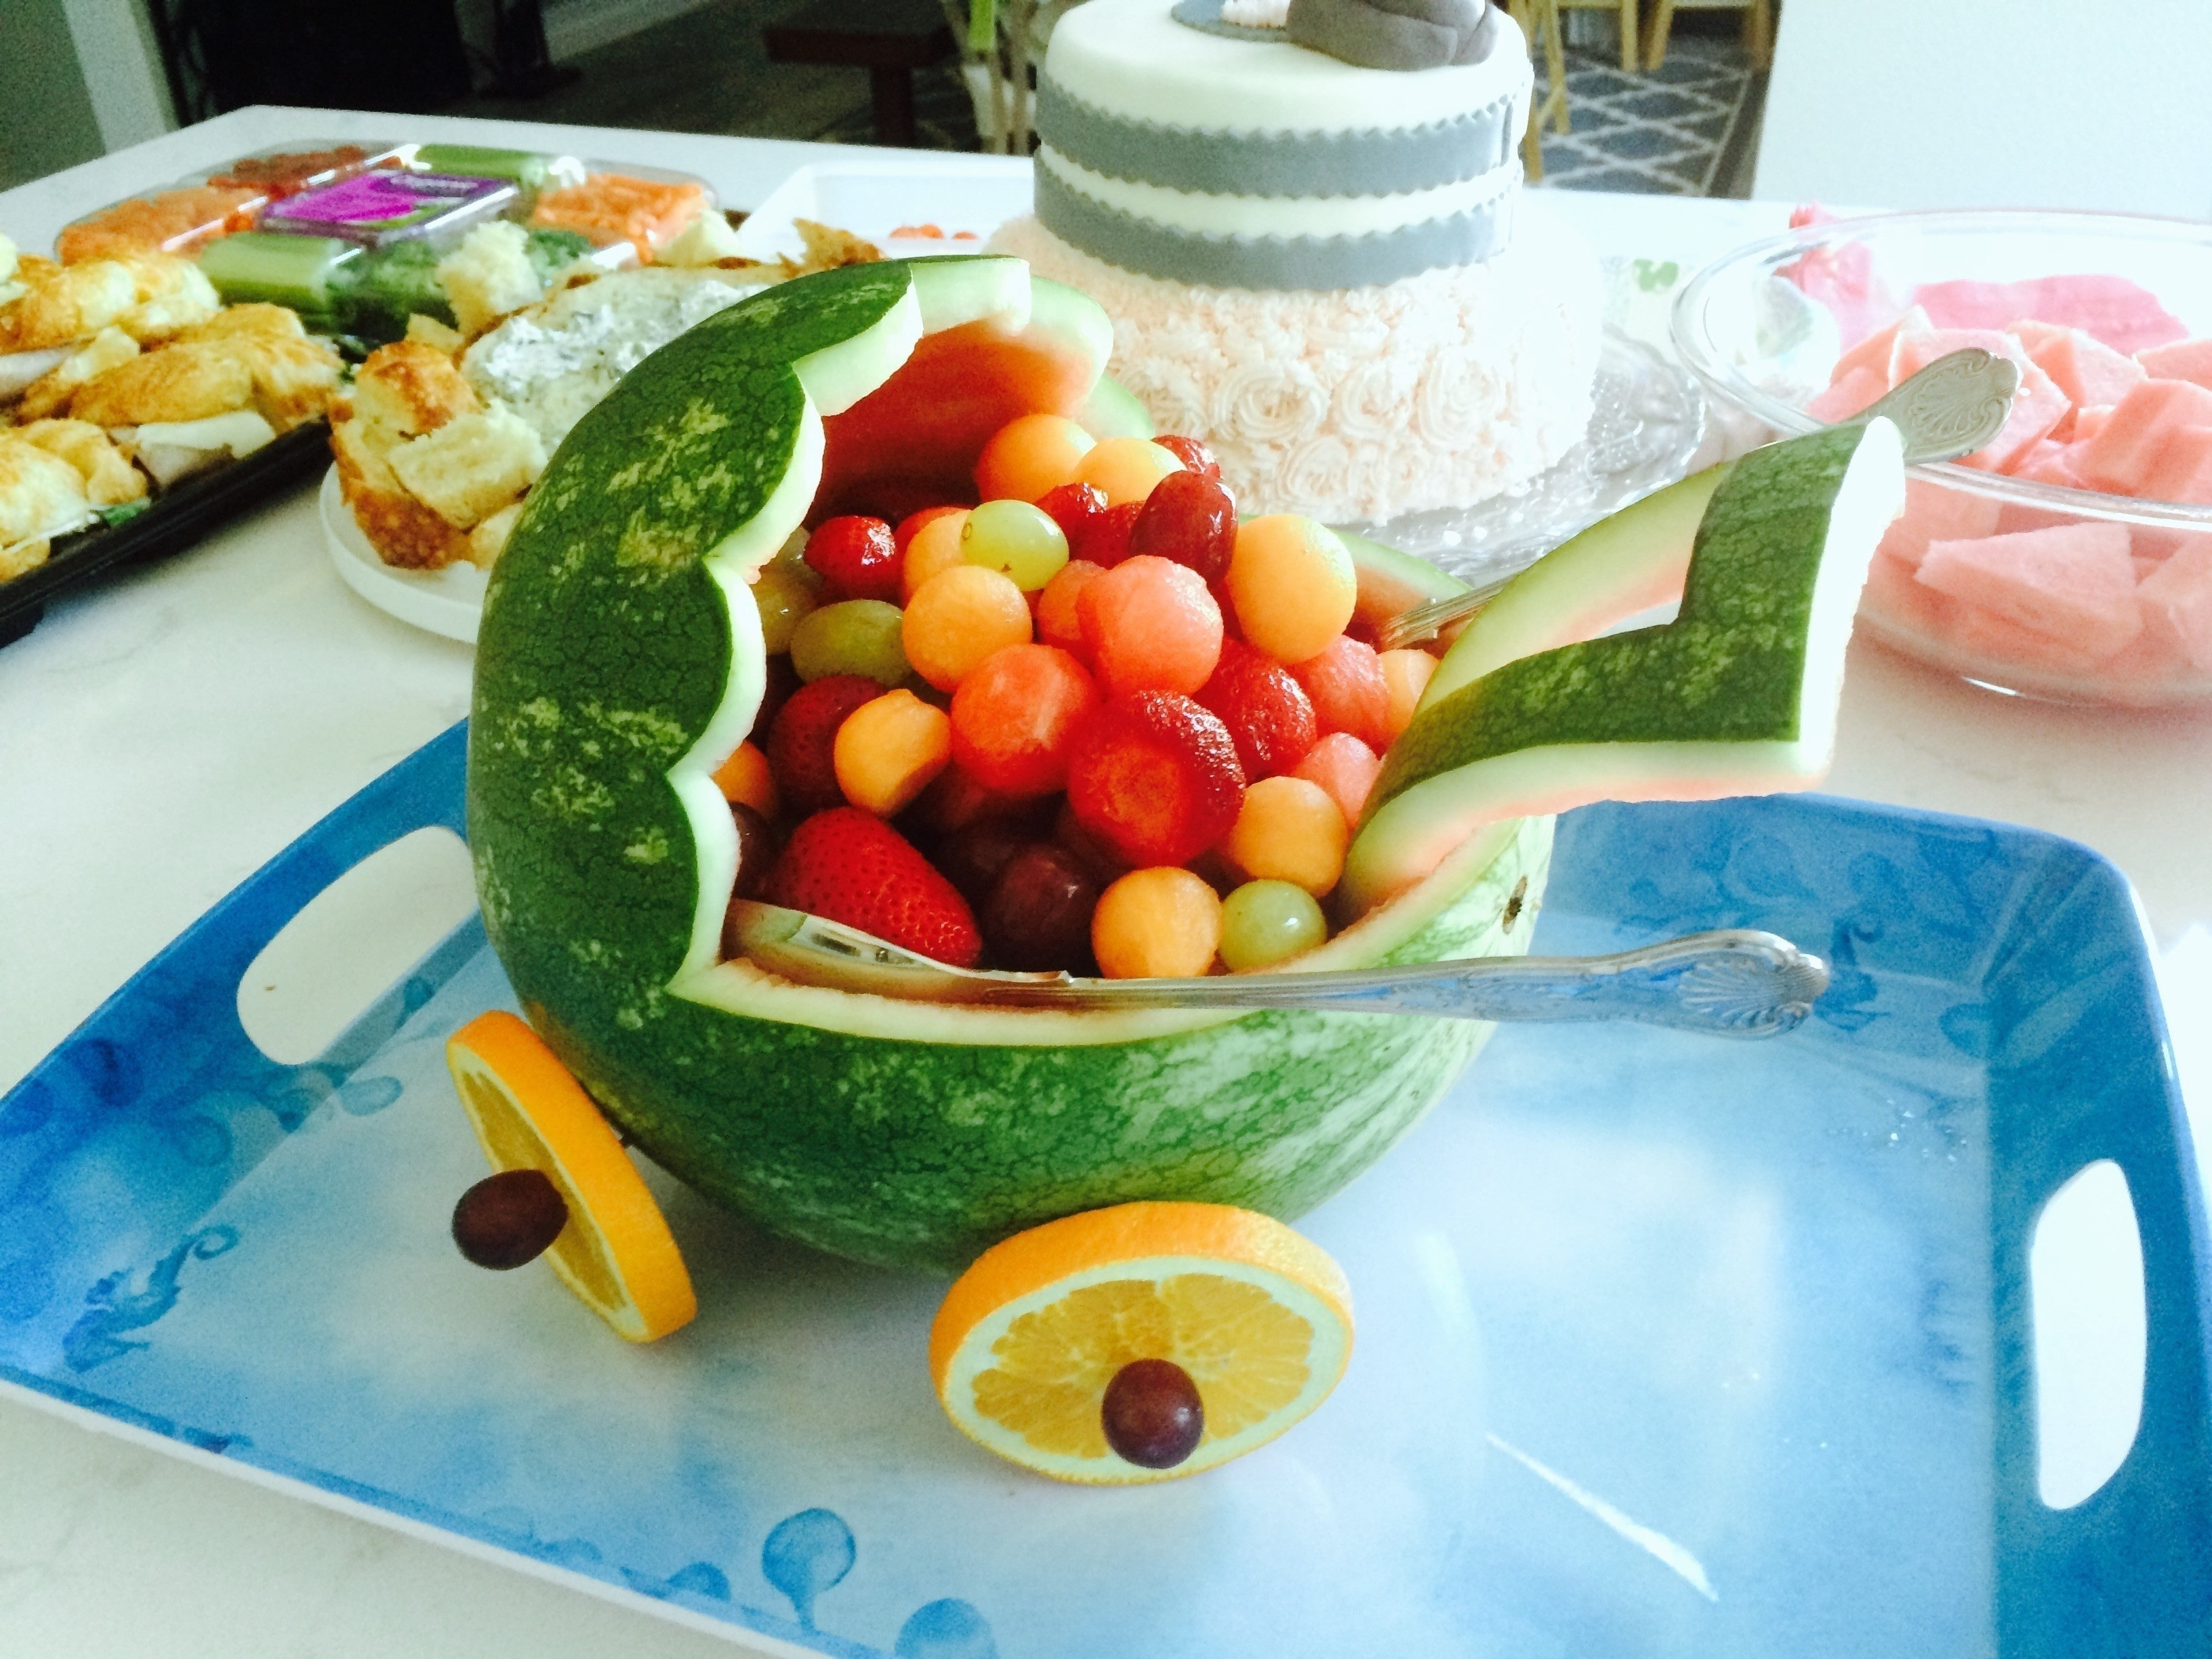 Watermelon baby carriage 183 how to make a fruit salad 183 recipes on